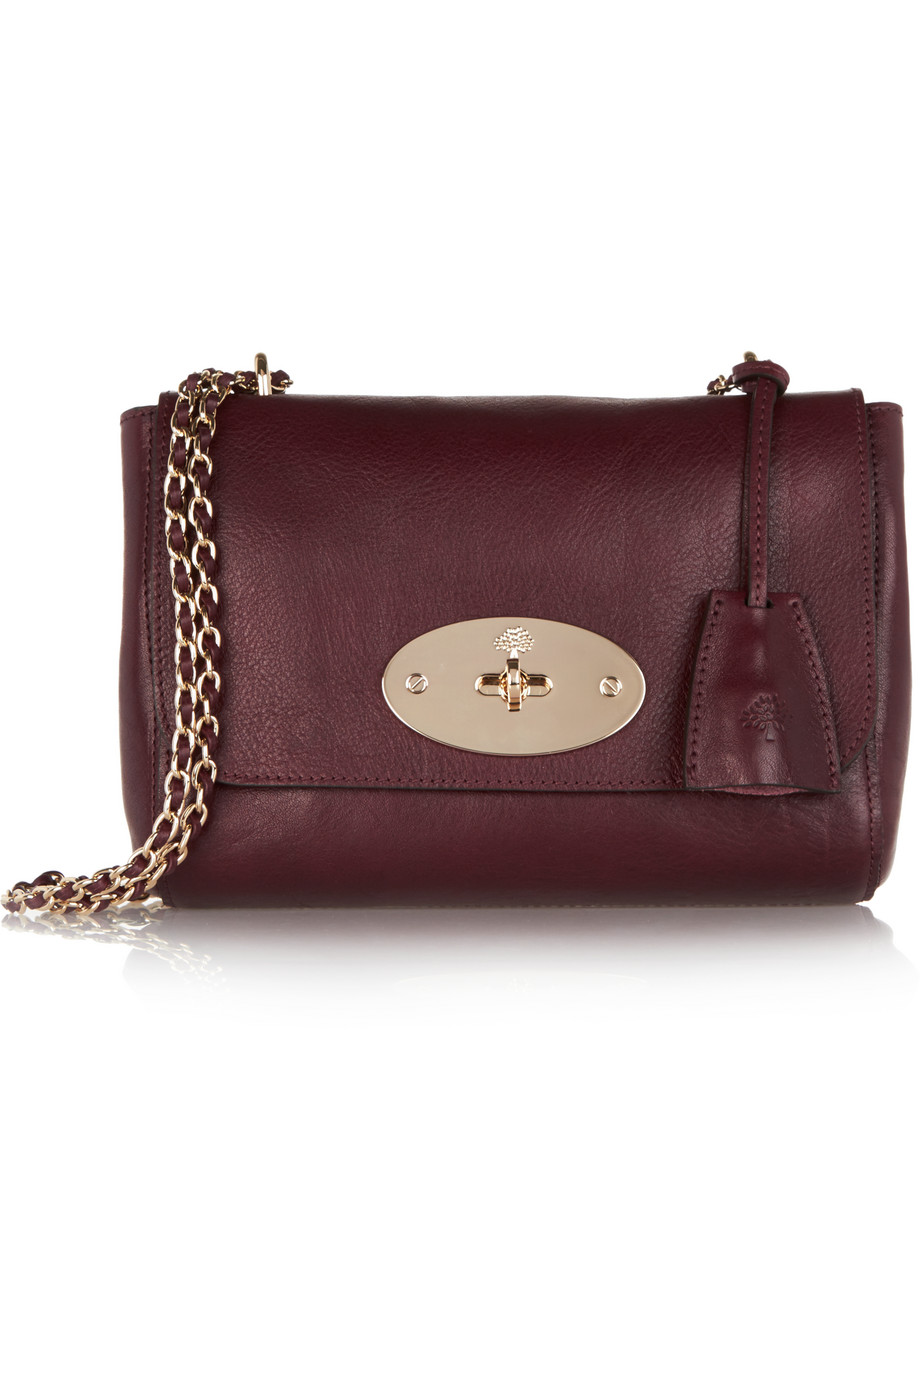 Mulberry Lily Small Textured-Leather Shoulder Bag, Burgundy, Women's